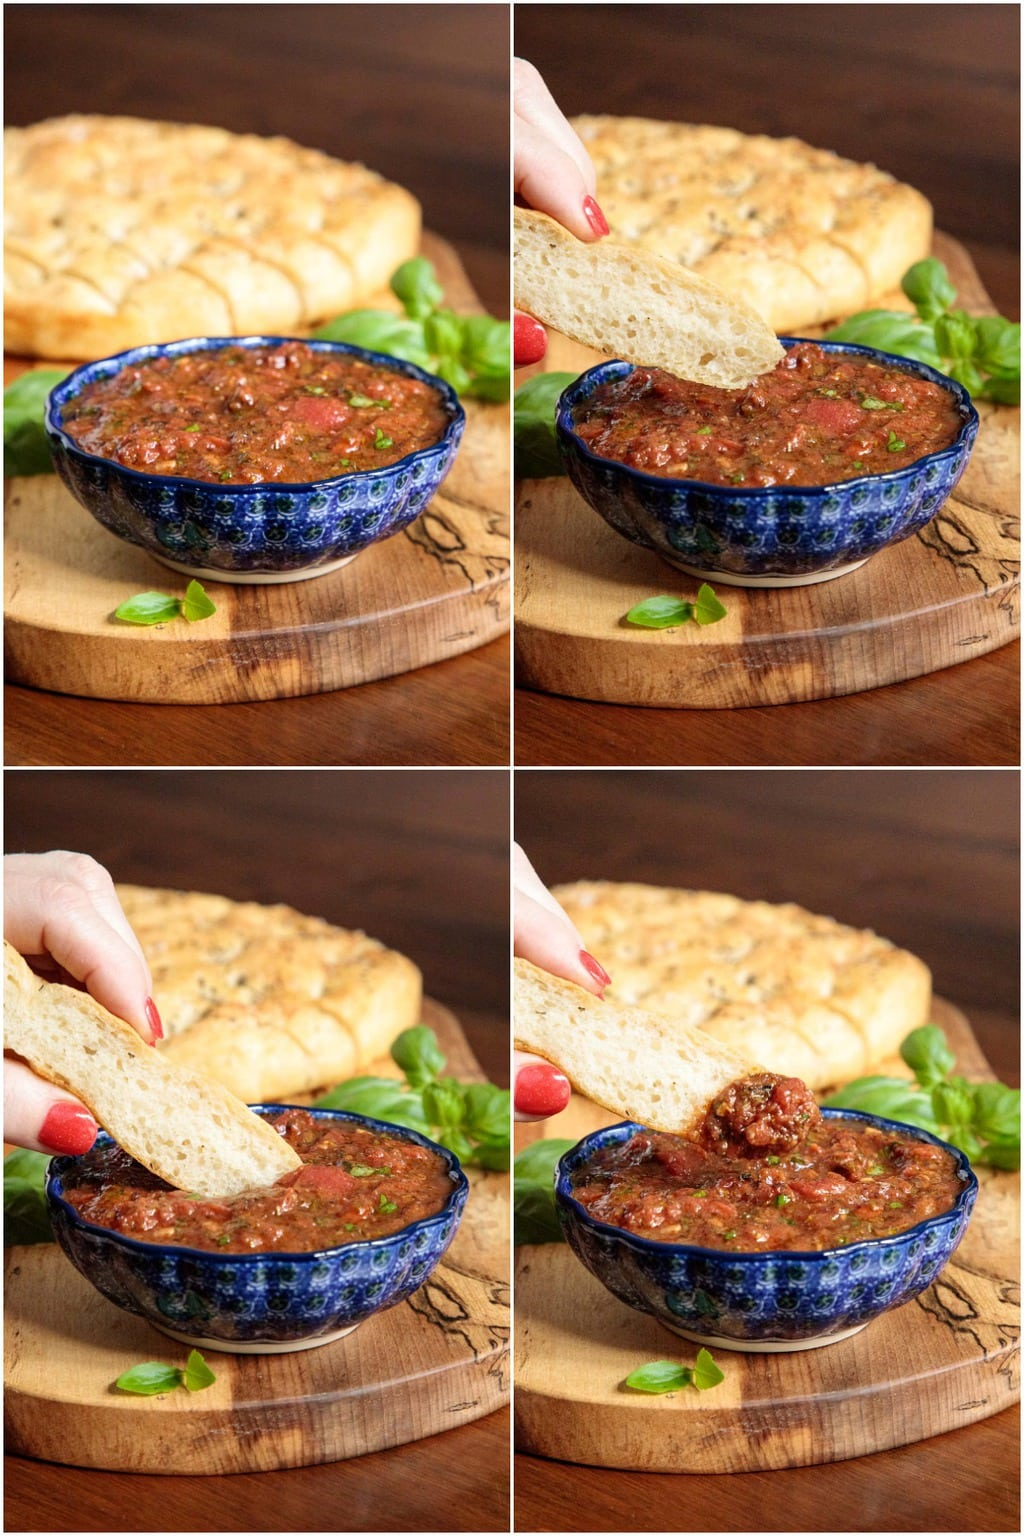 Vertical 4-photo collage of a person dipping a slice of Focaccia bread into a blue patterned bowl filled with Quick and Easy Marinara Sauce.